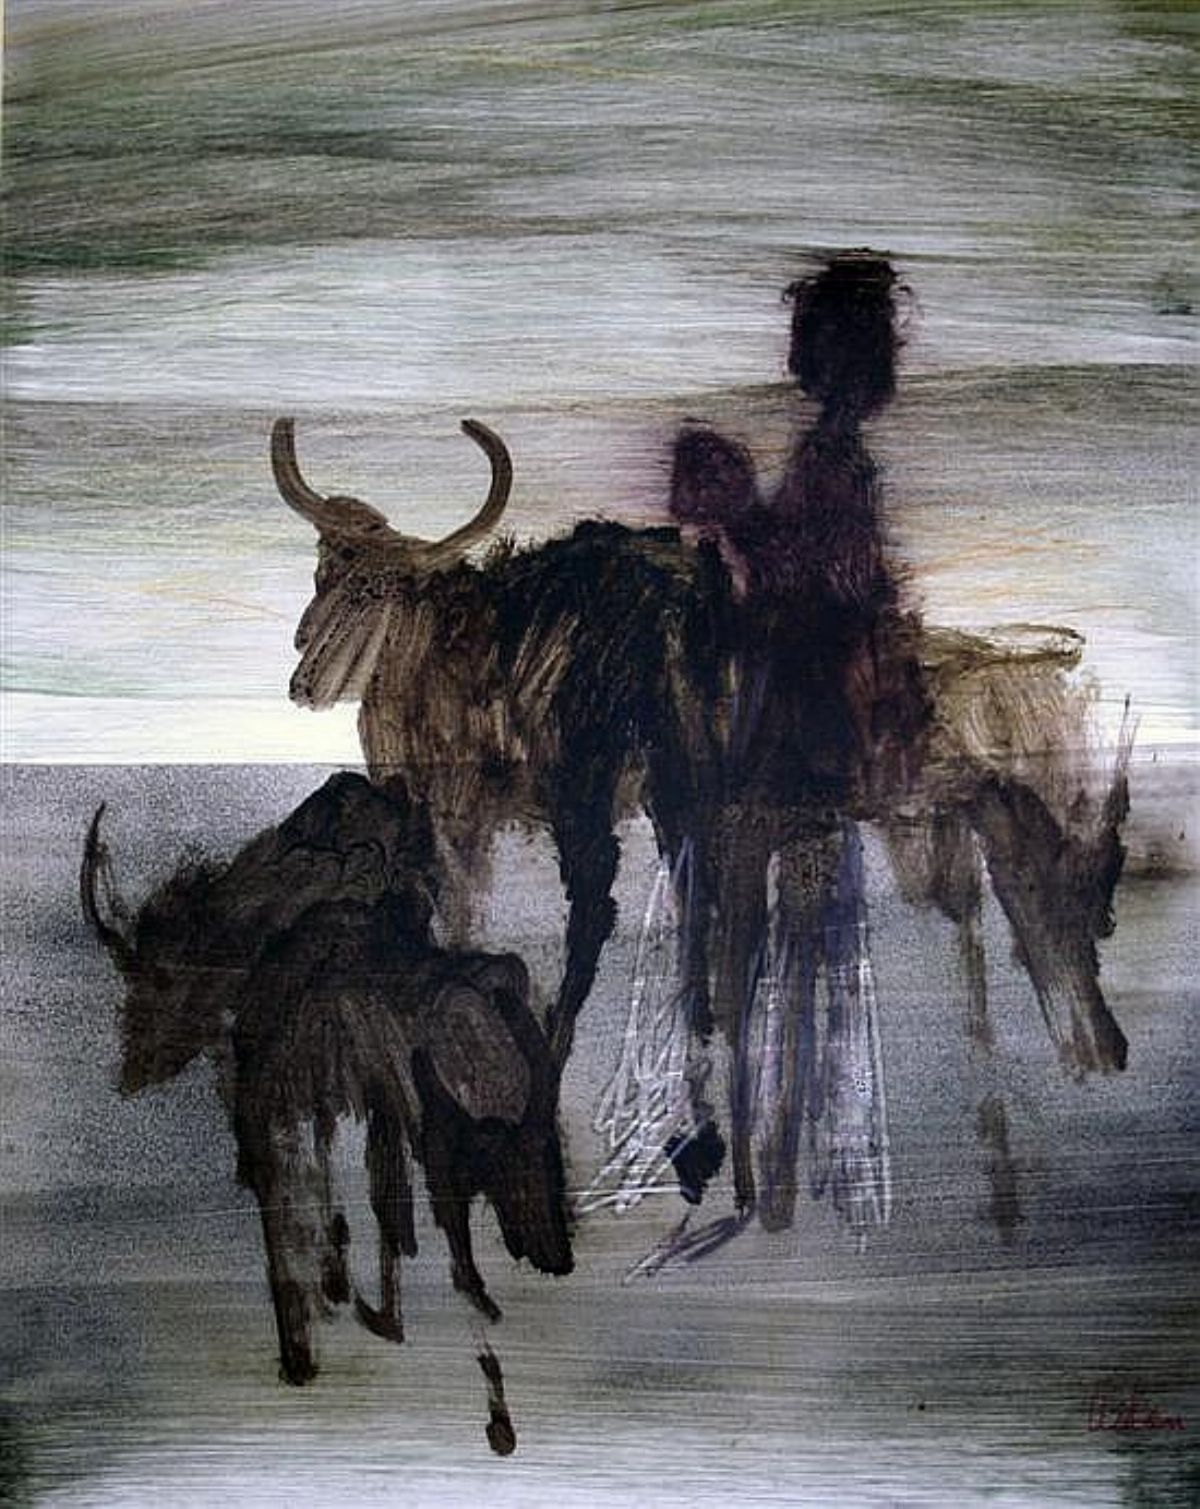 African Study artwork by Sidney Nolan - art listed for sale on Artplode